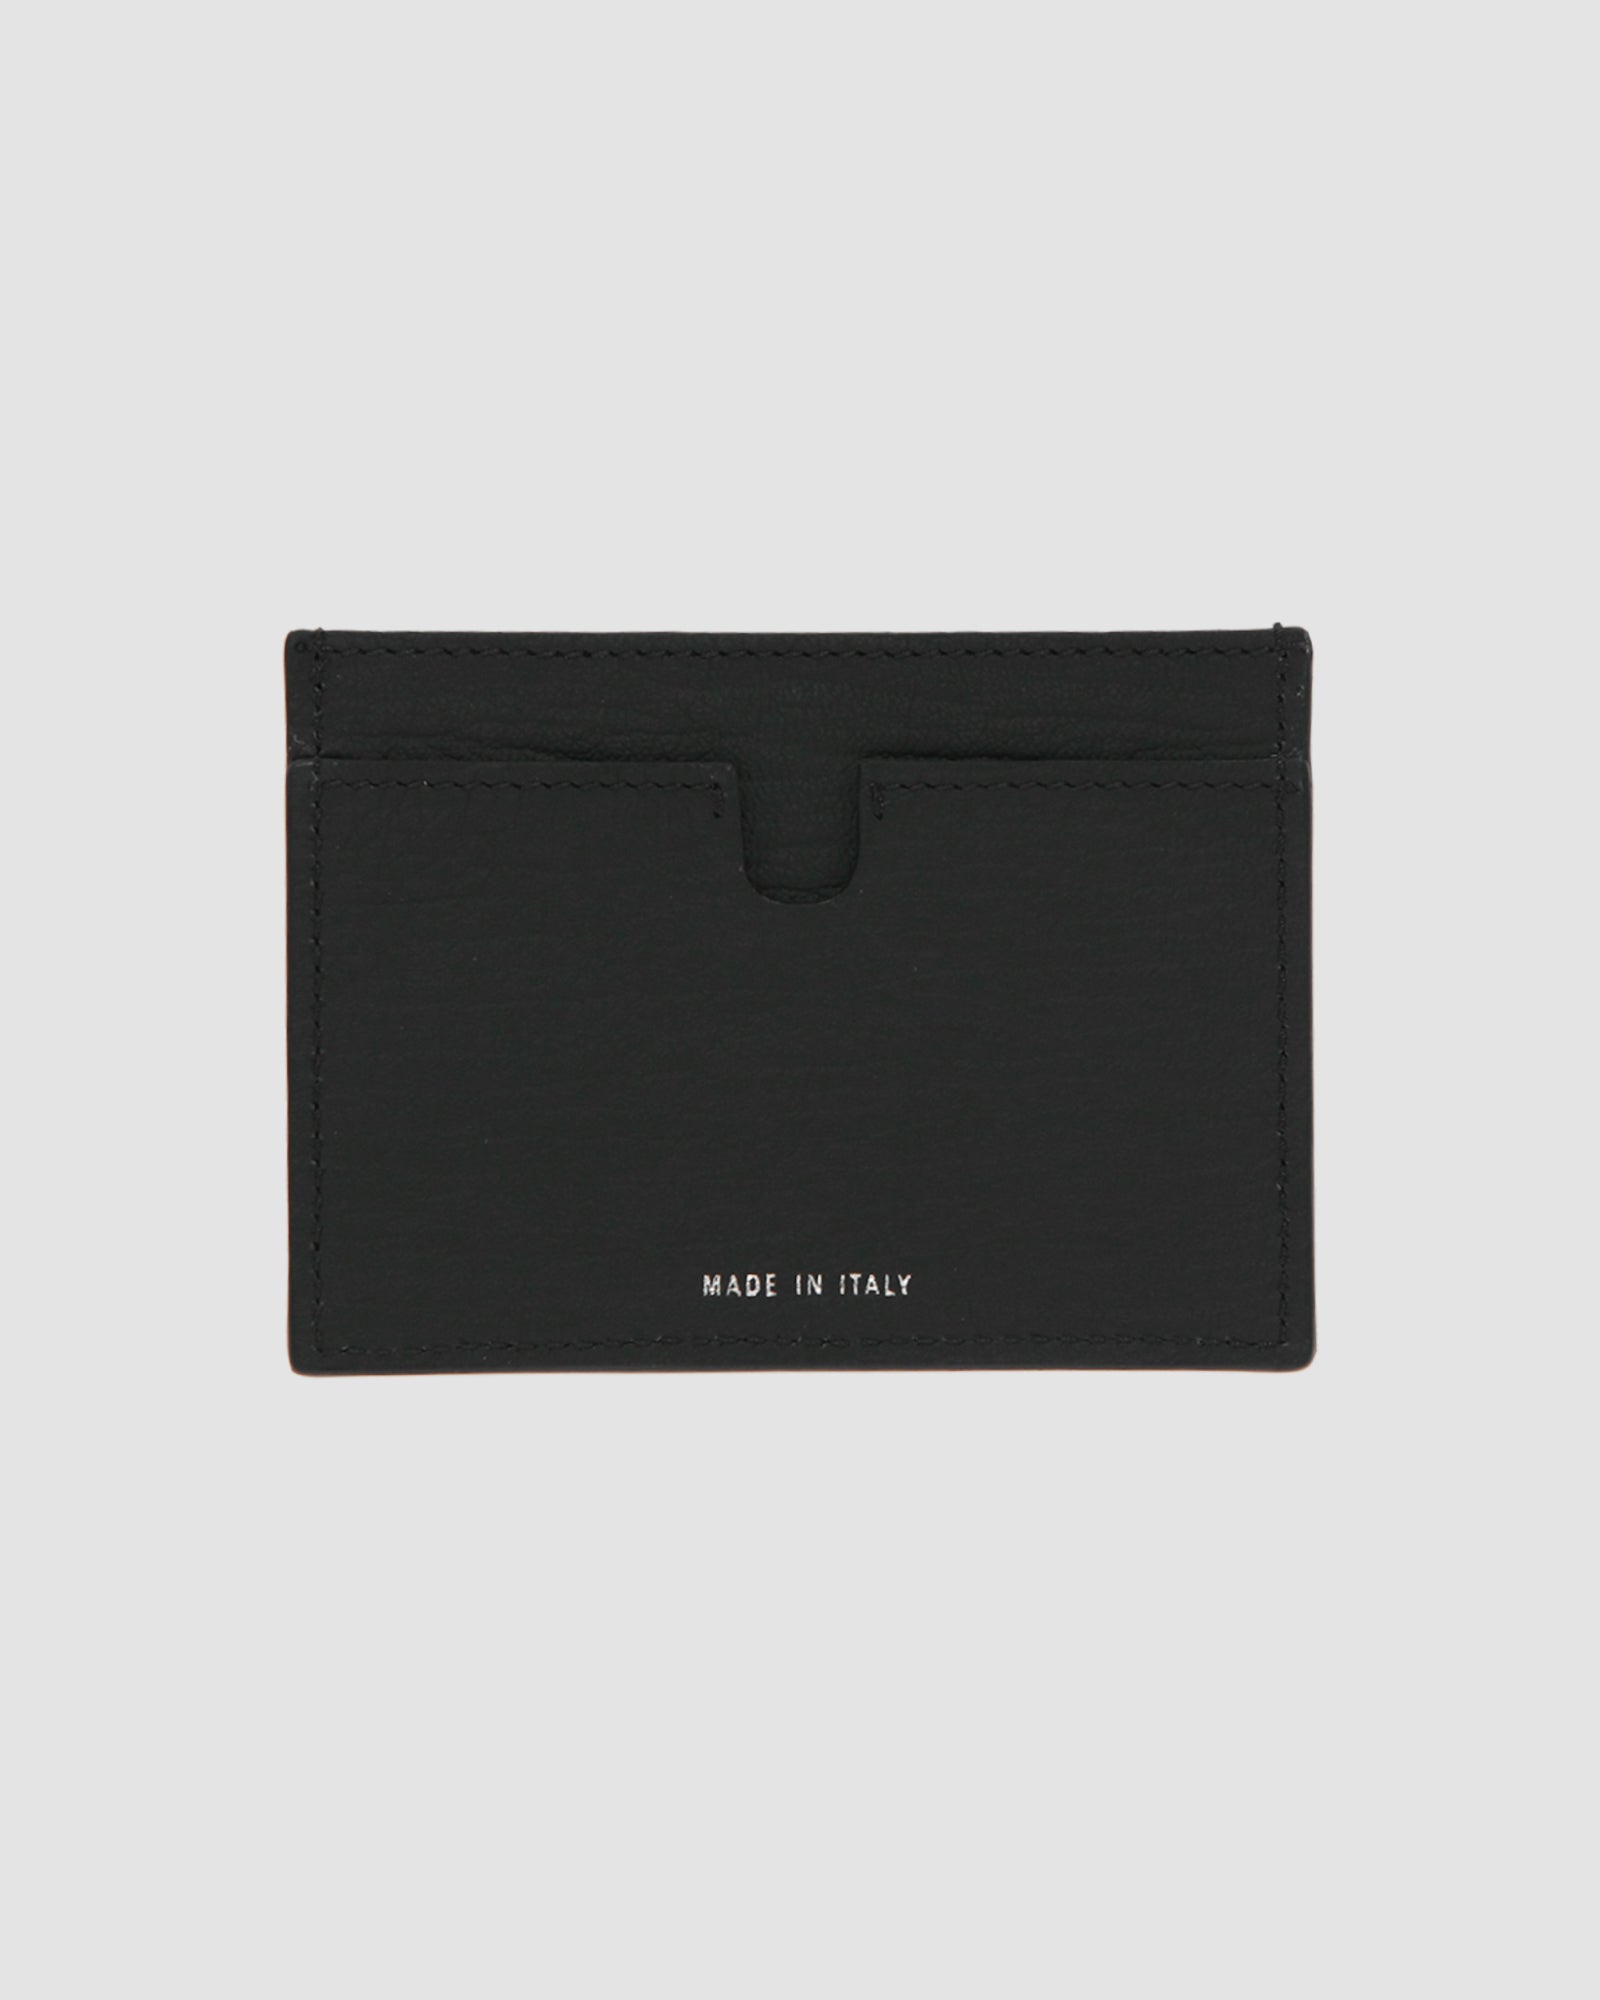 1017 ALYX 9SM | RYAN CARDHOLDER | Wallet | Accessories, BLACK, Man, S20, UNISEX, Wallet, WALLETS, Woman